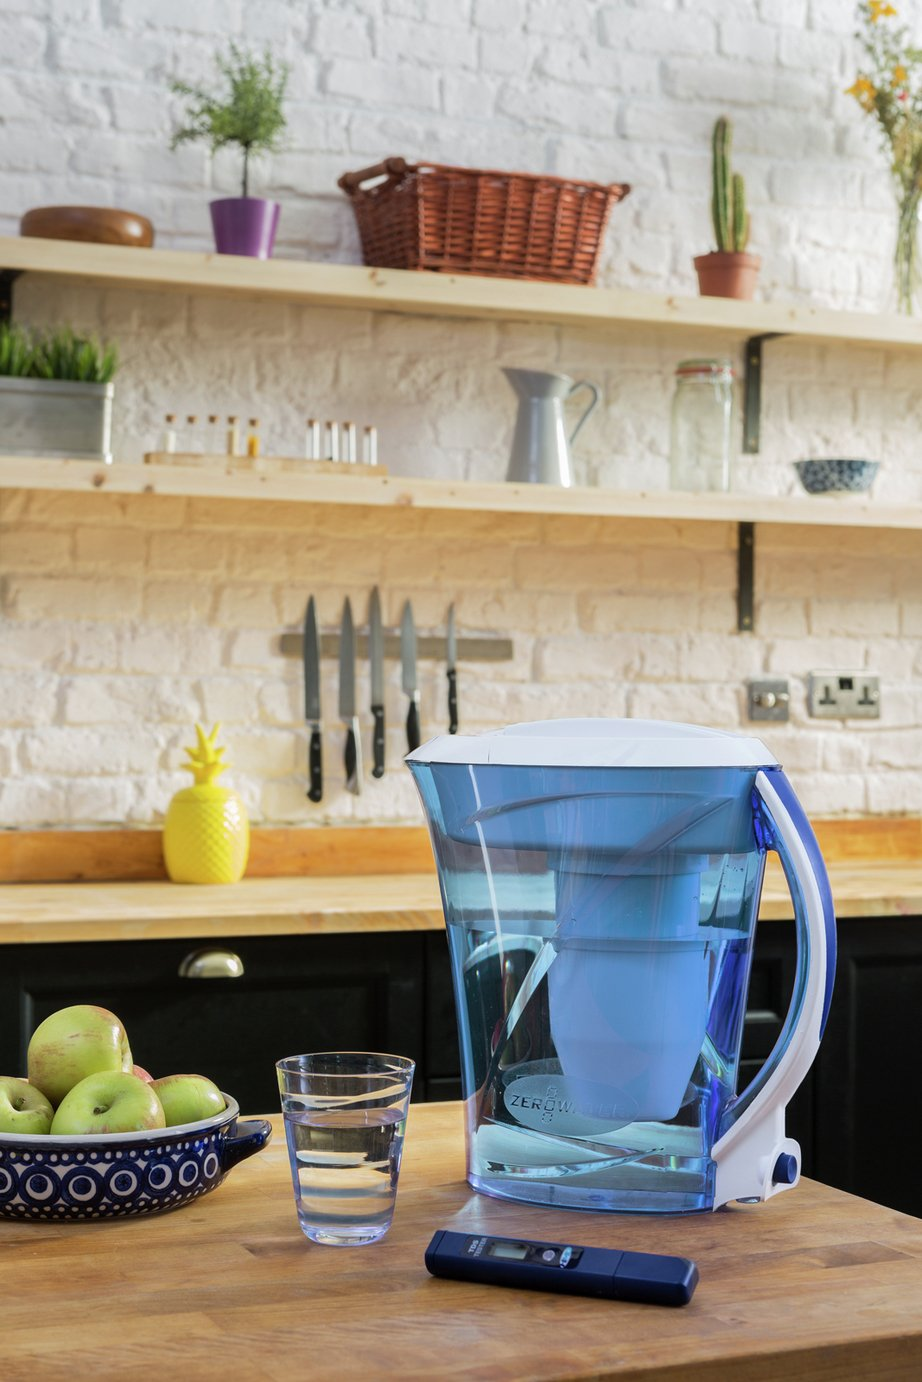 Zerowater 10 Cup Water Filter Jug - Blue